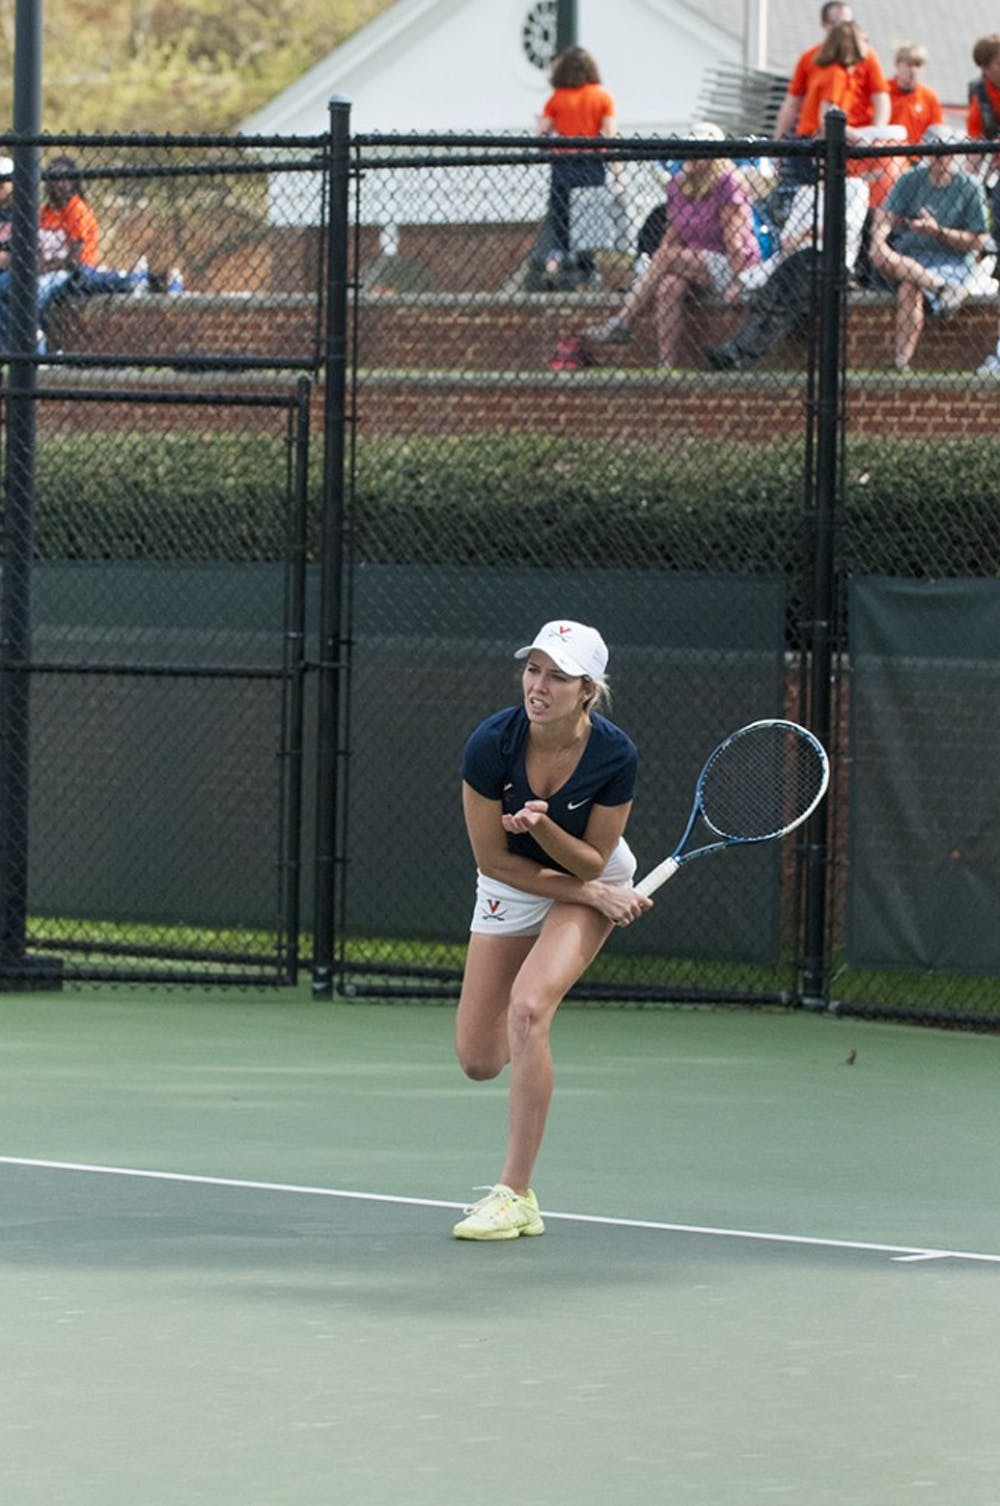 <p>Senior Danielle Collins, a two-time All-American, is one of the key leaders of the Virginia' women's tennis team as one of the team's three captains.</p>